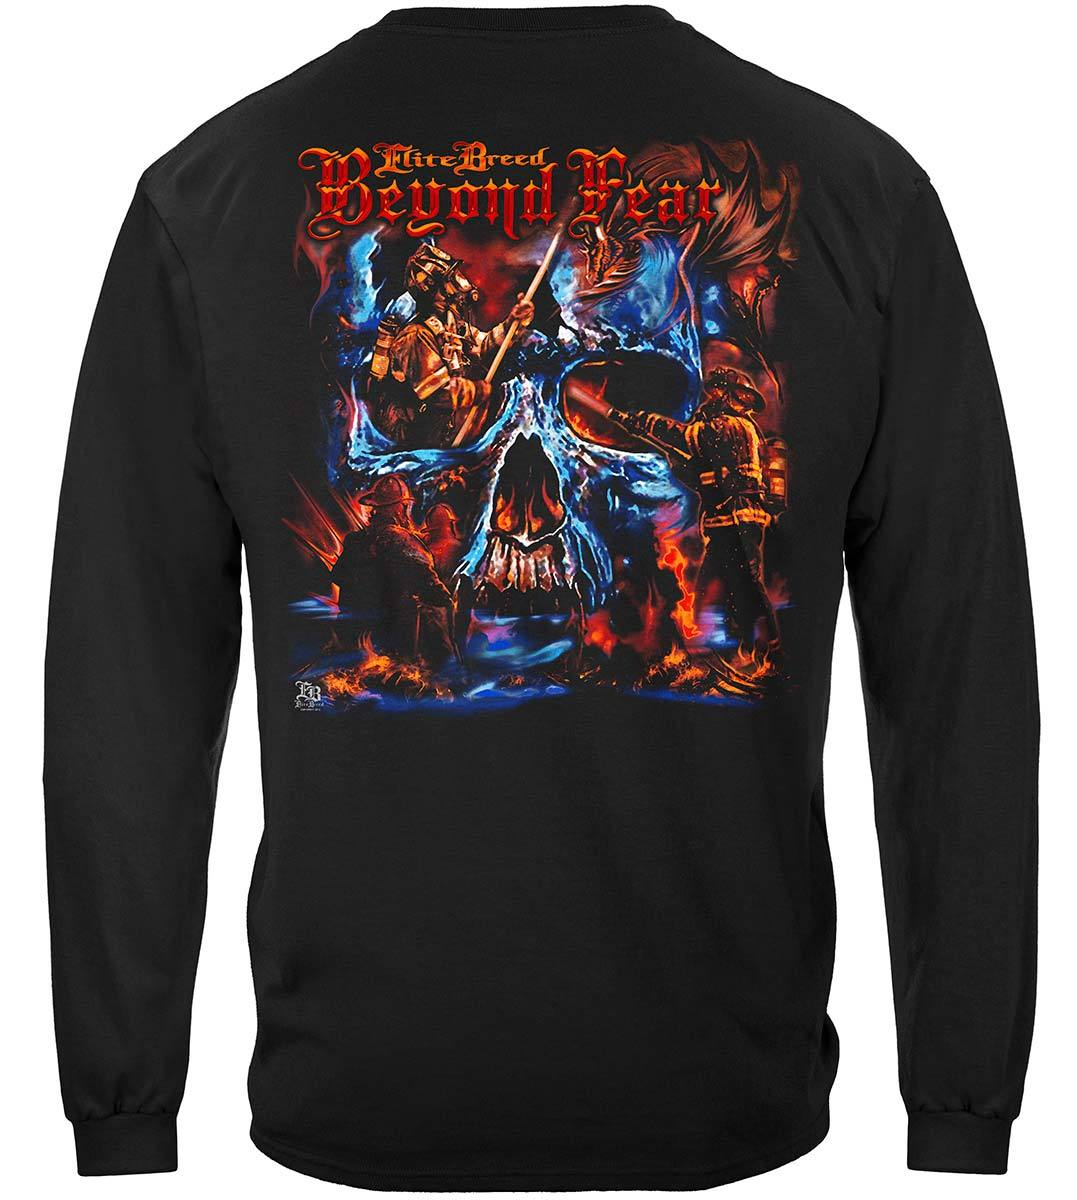 Elite Breed Beyond Fear Skull Premium Hooded Sweat Shirt